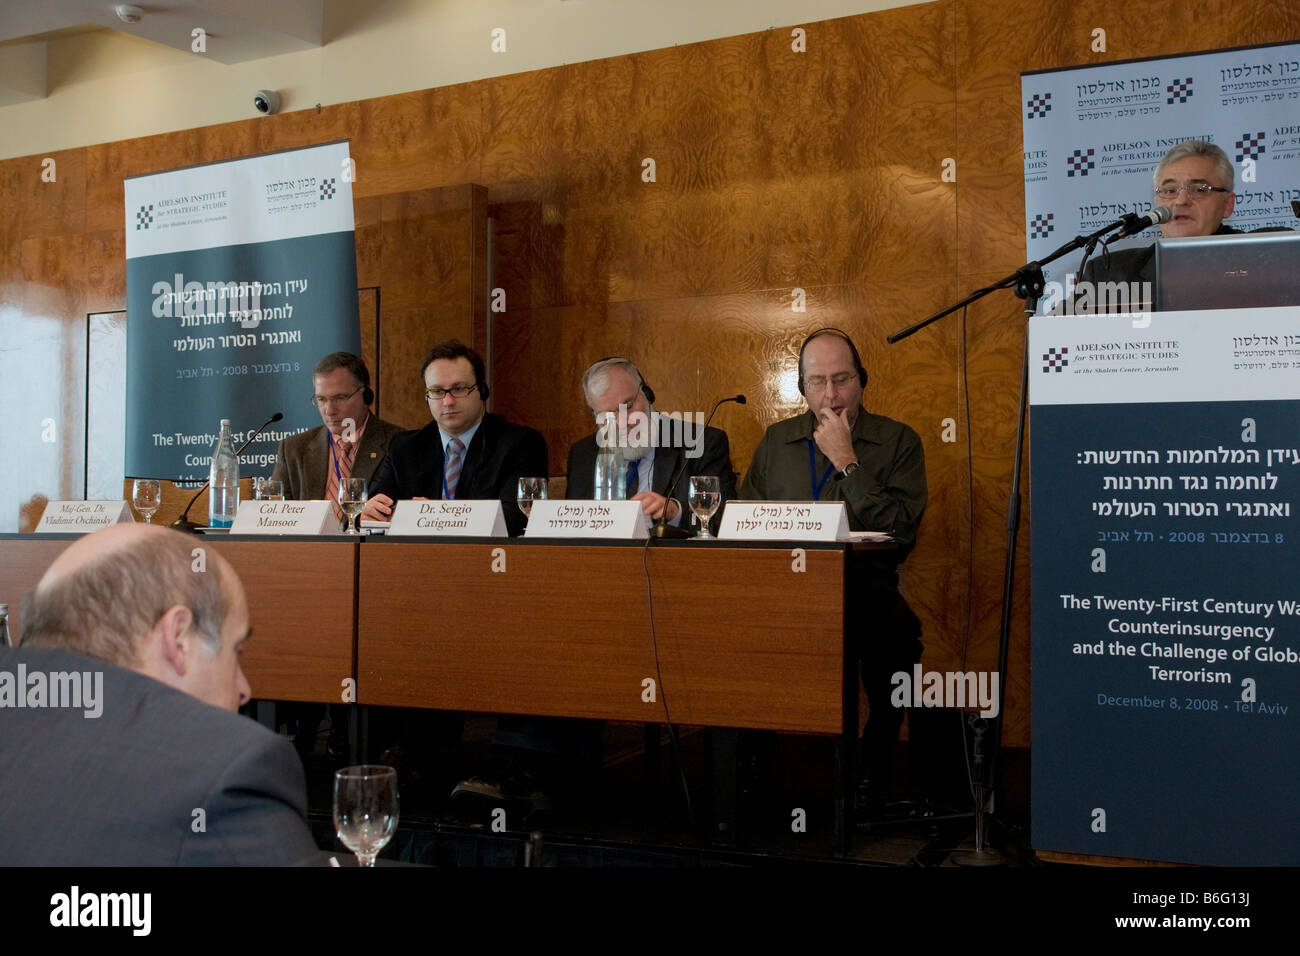 Panel on the Military Aspect of Counterinsurgency, during the Adelson Institute for Strategic Studies Dec. 2008 Stock Photo